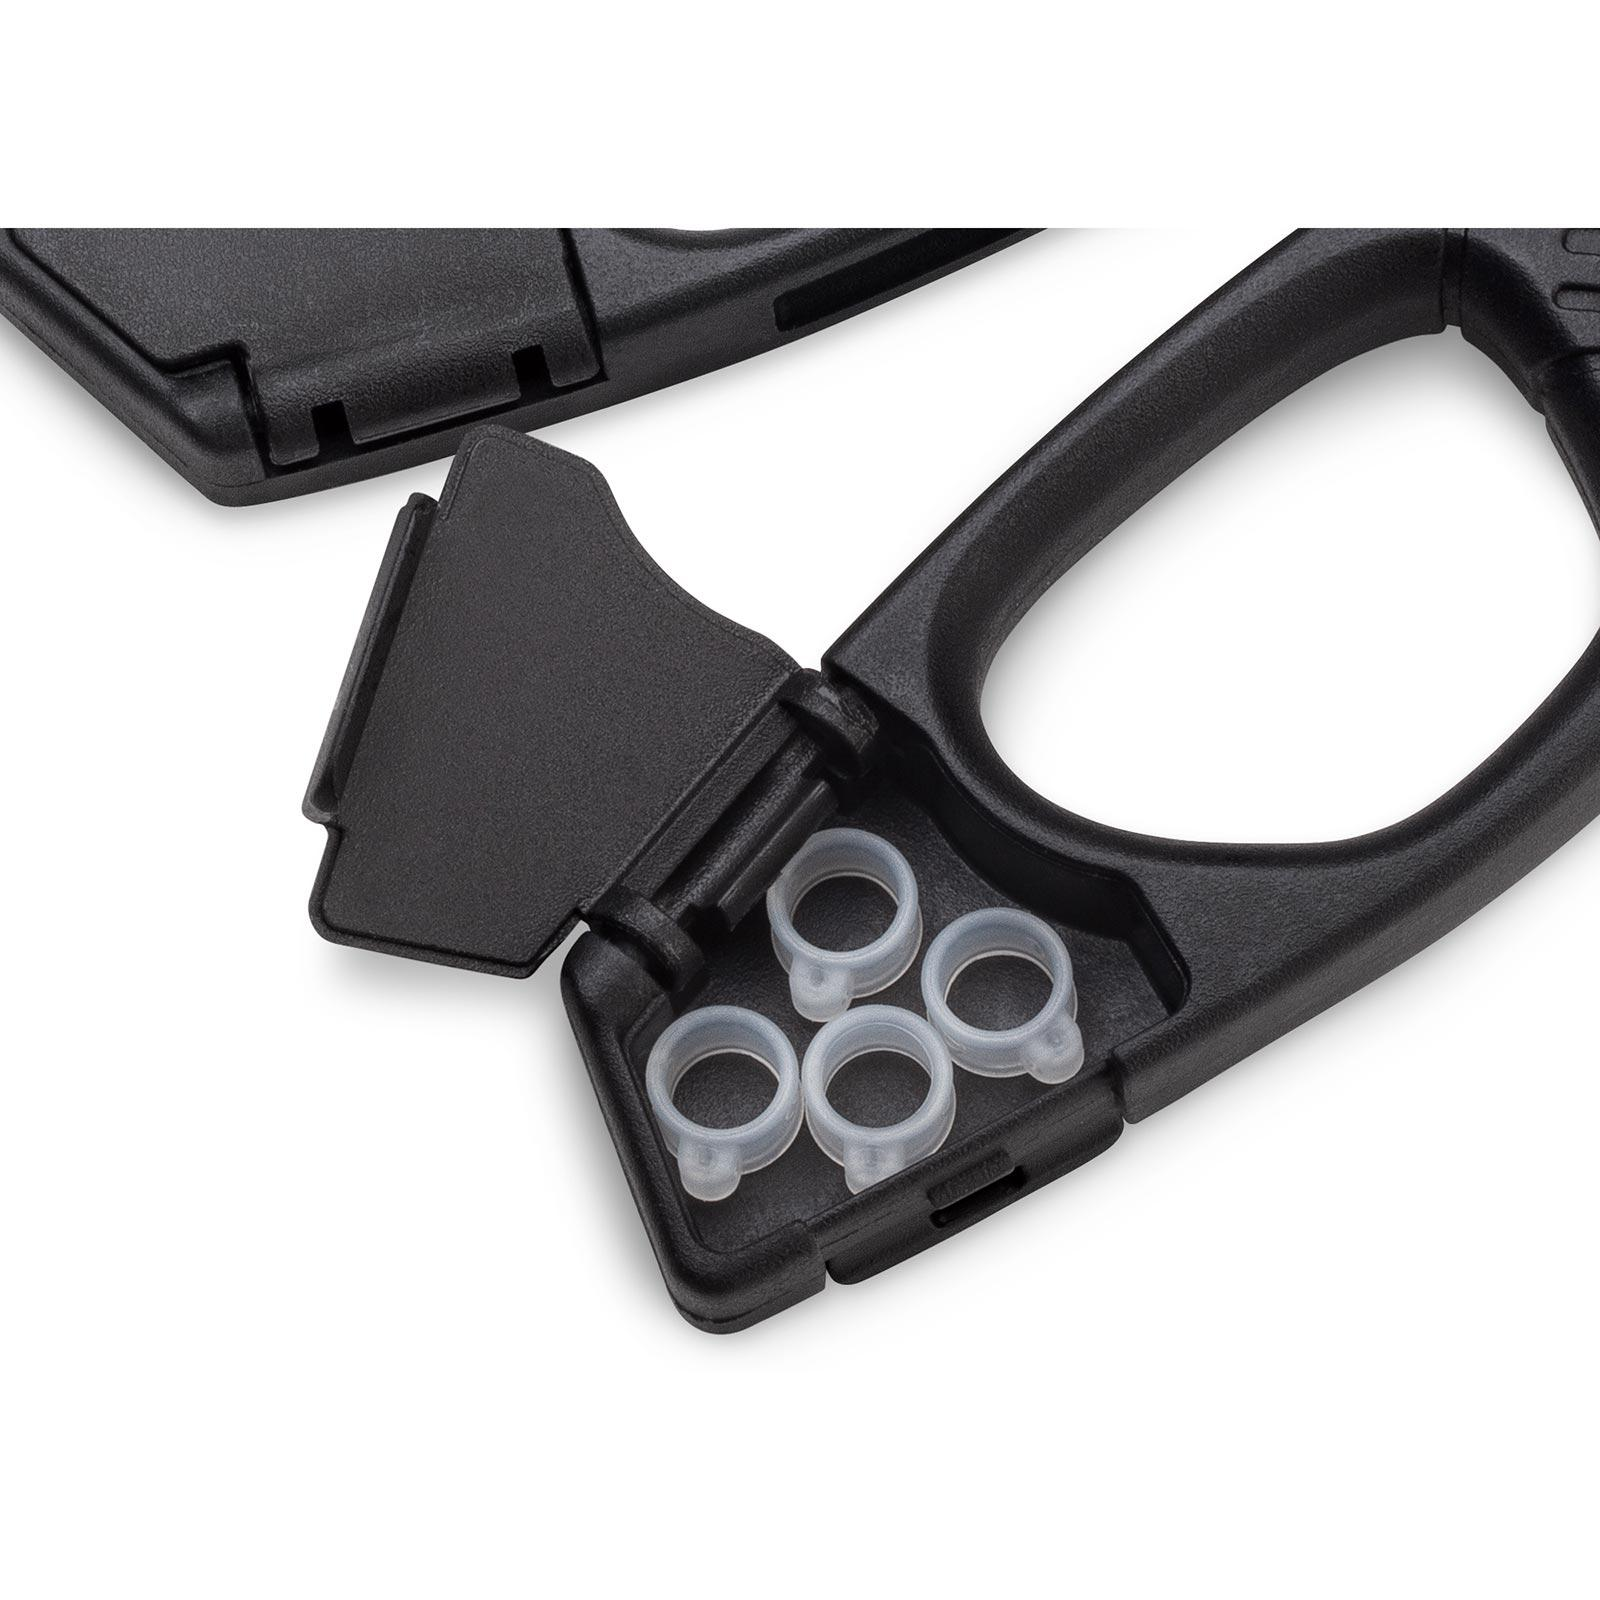 VMC Crossover Pliers for Neko and Wacky Rigging Handle Storage